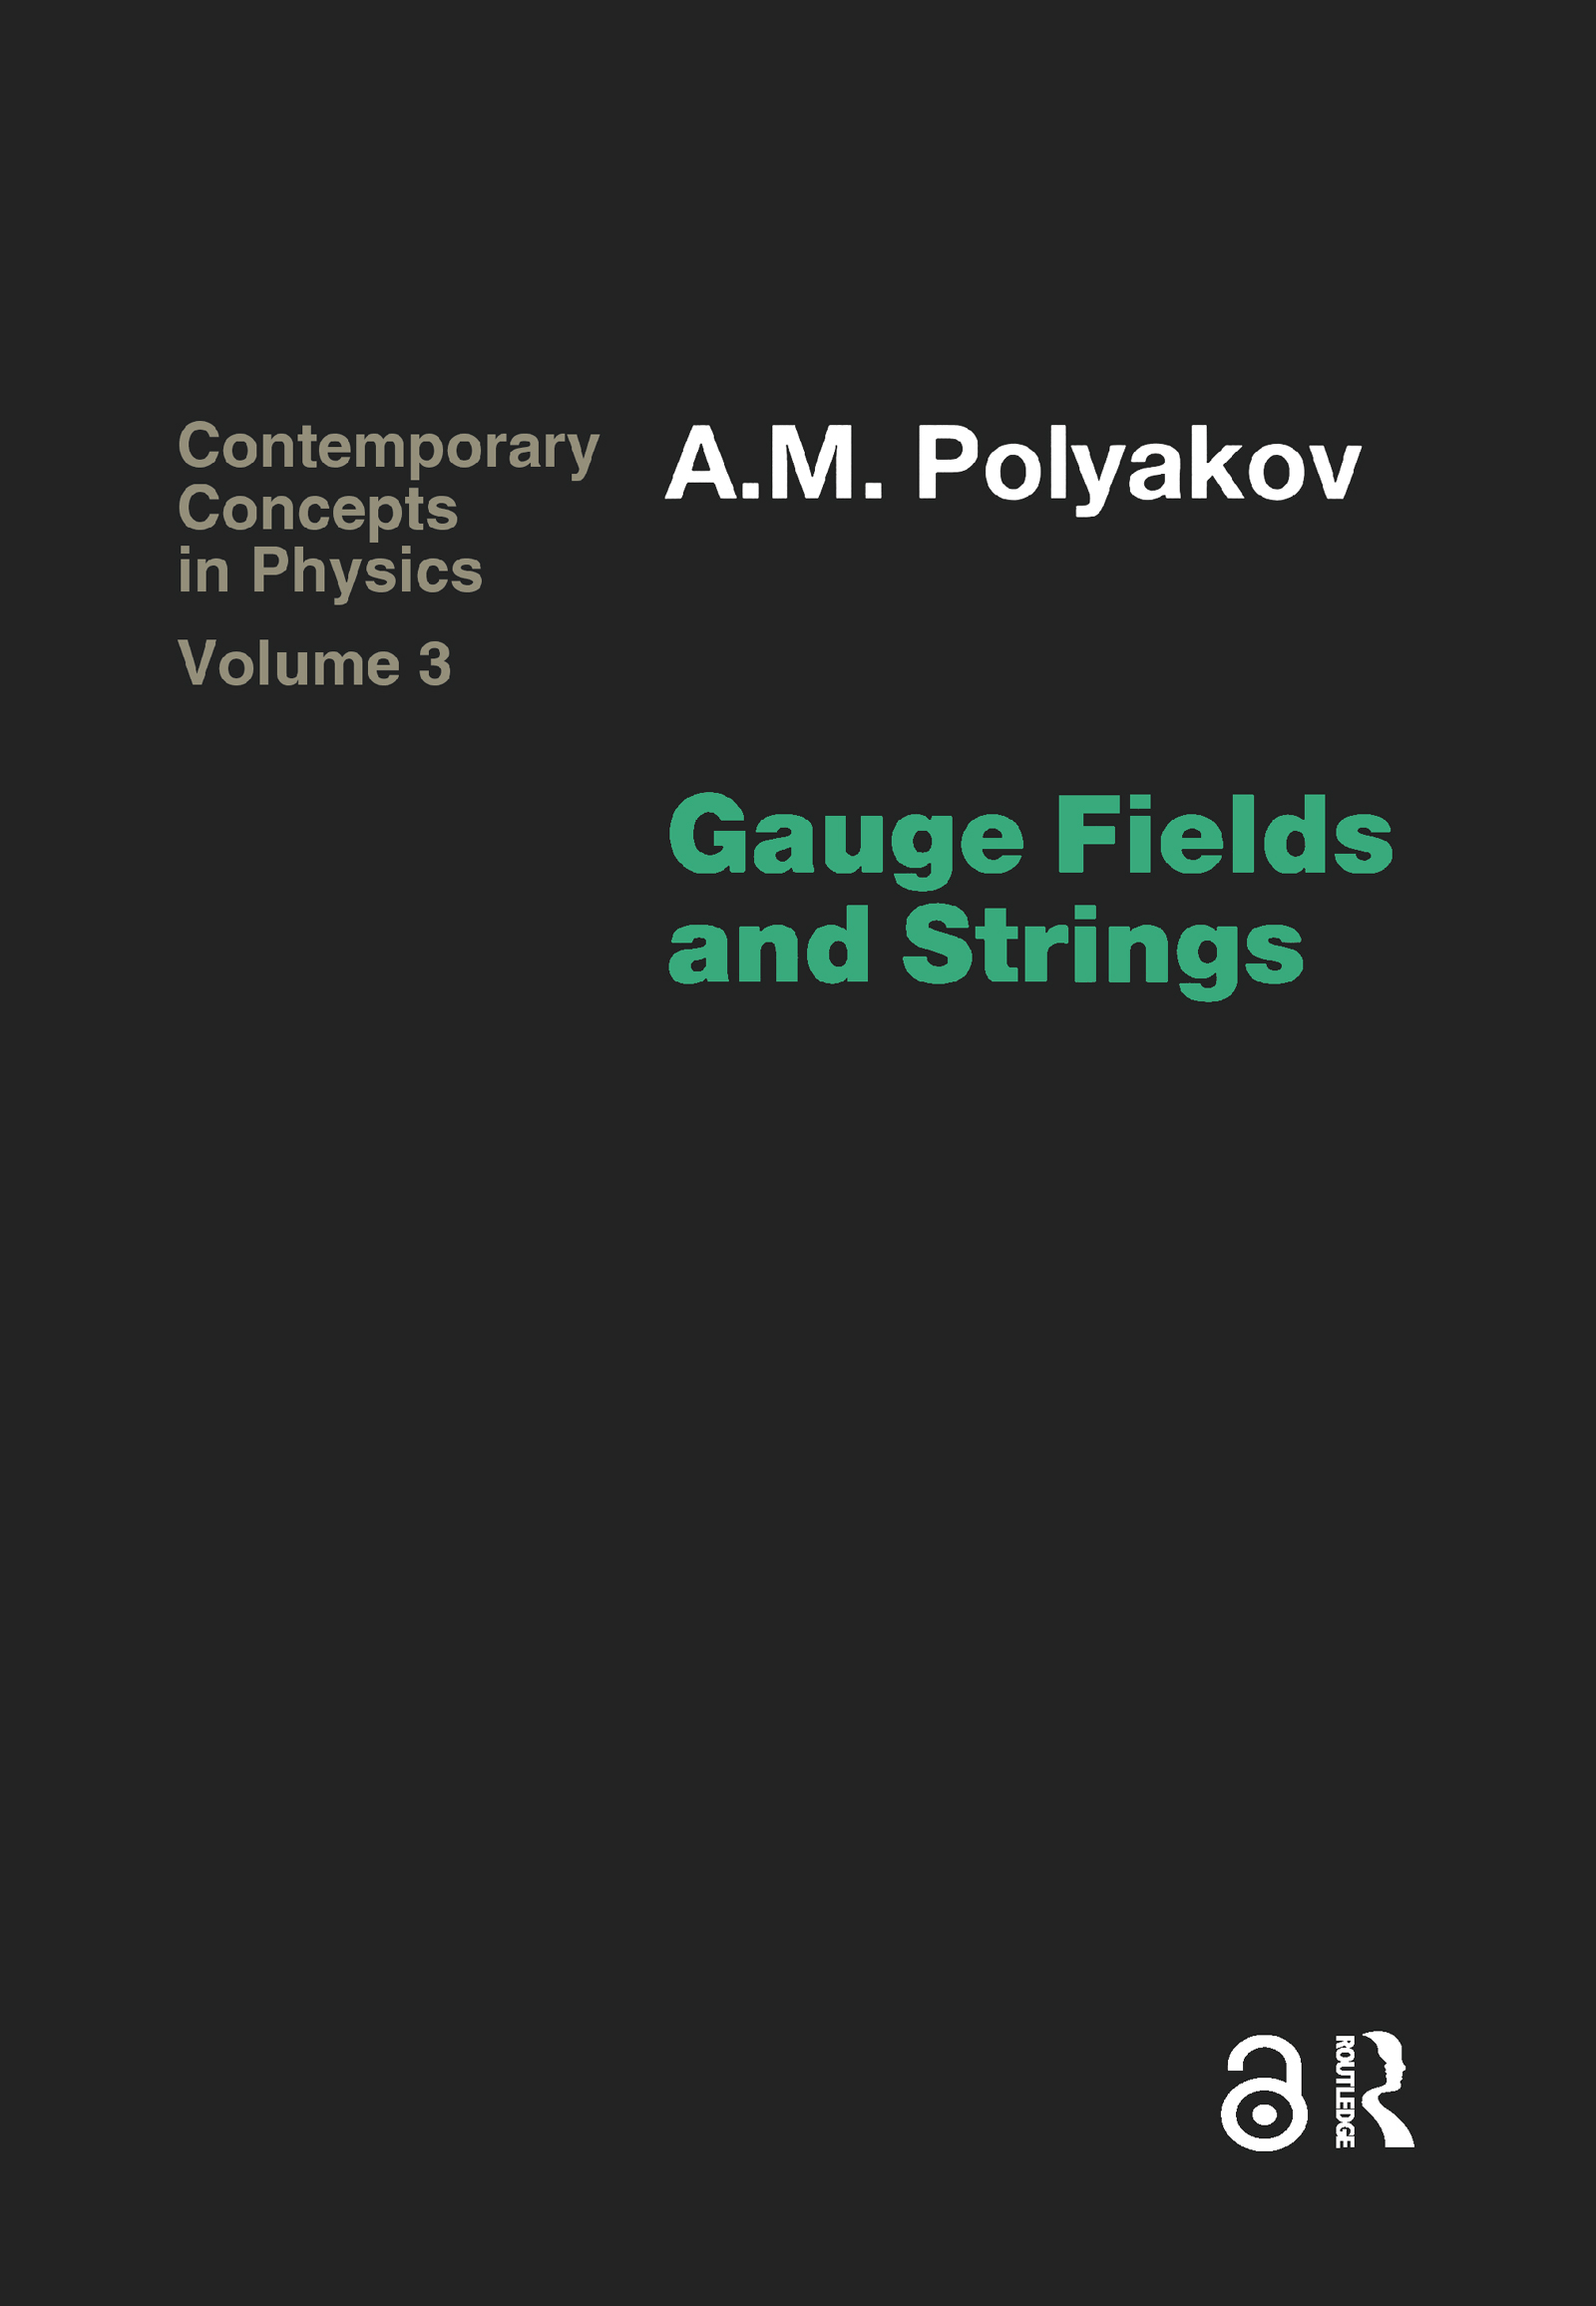 Gauge Fields and Strings